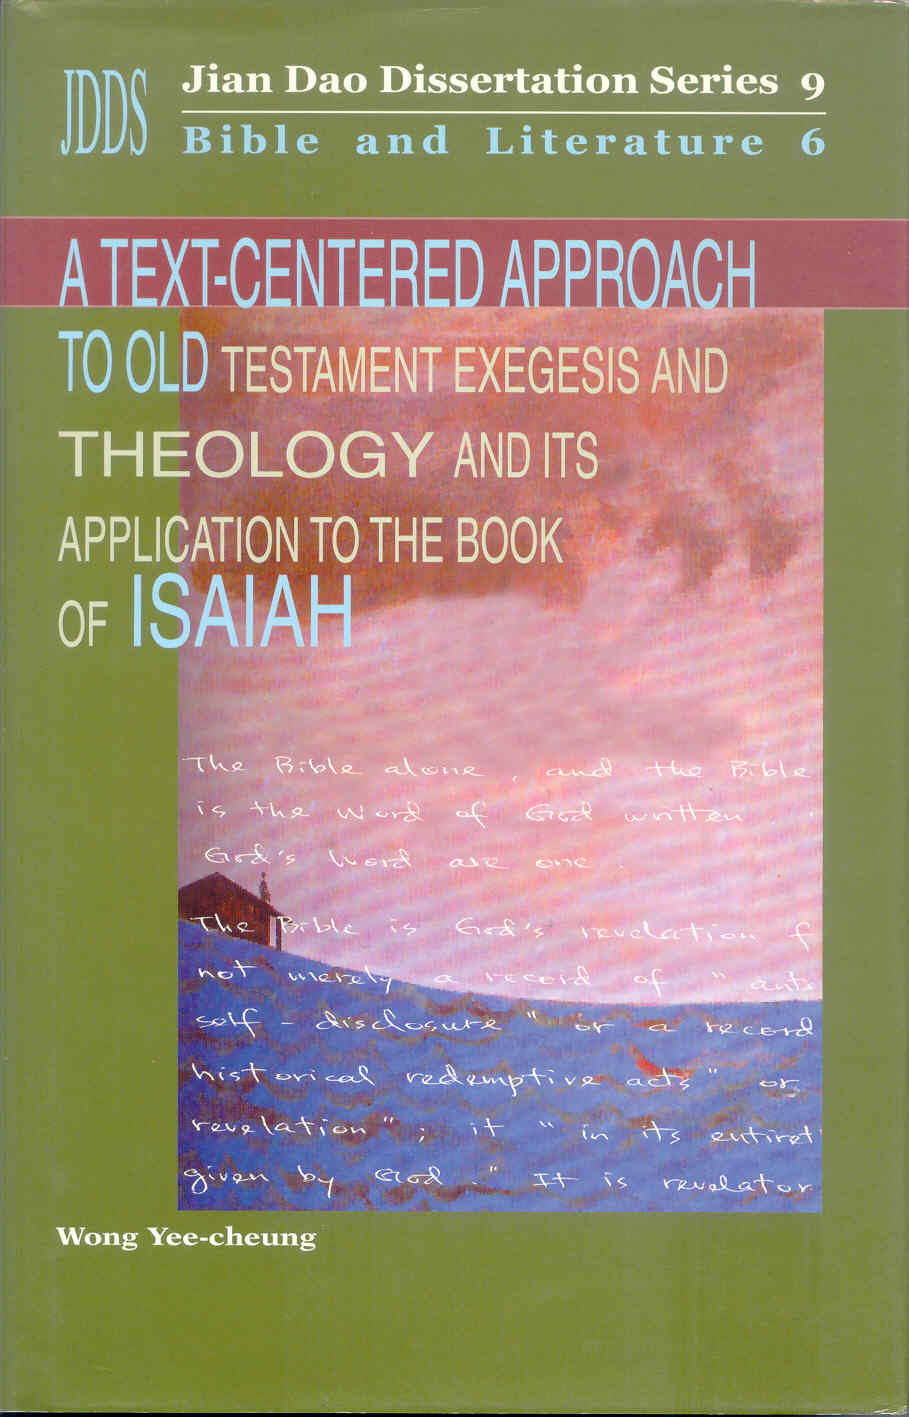 A Text-Centered Approach to Old Testament Exegesis and Theology and Its Application to the Book of Isaiah